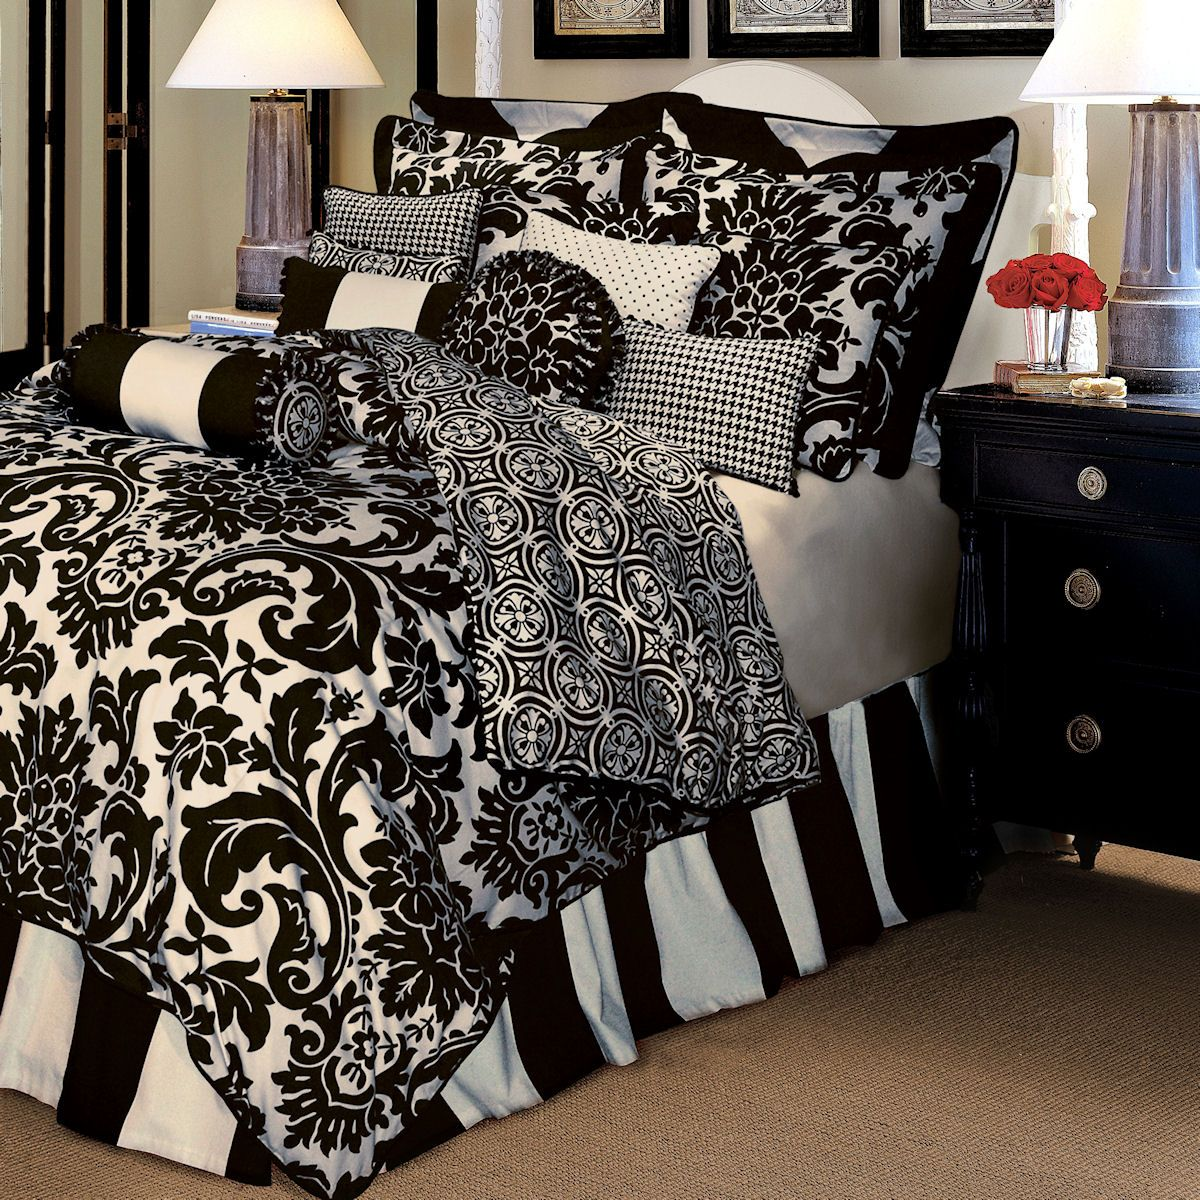 image detail for - comforter sets rose tree luxury bedding